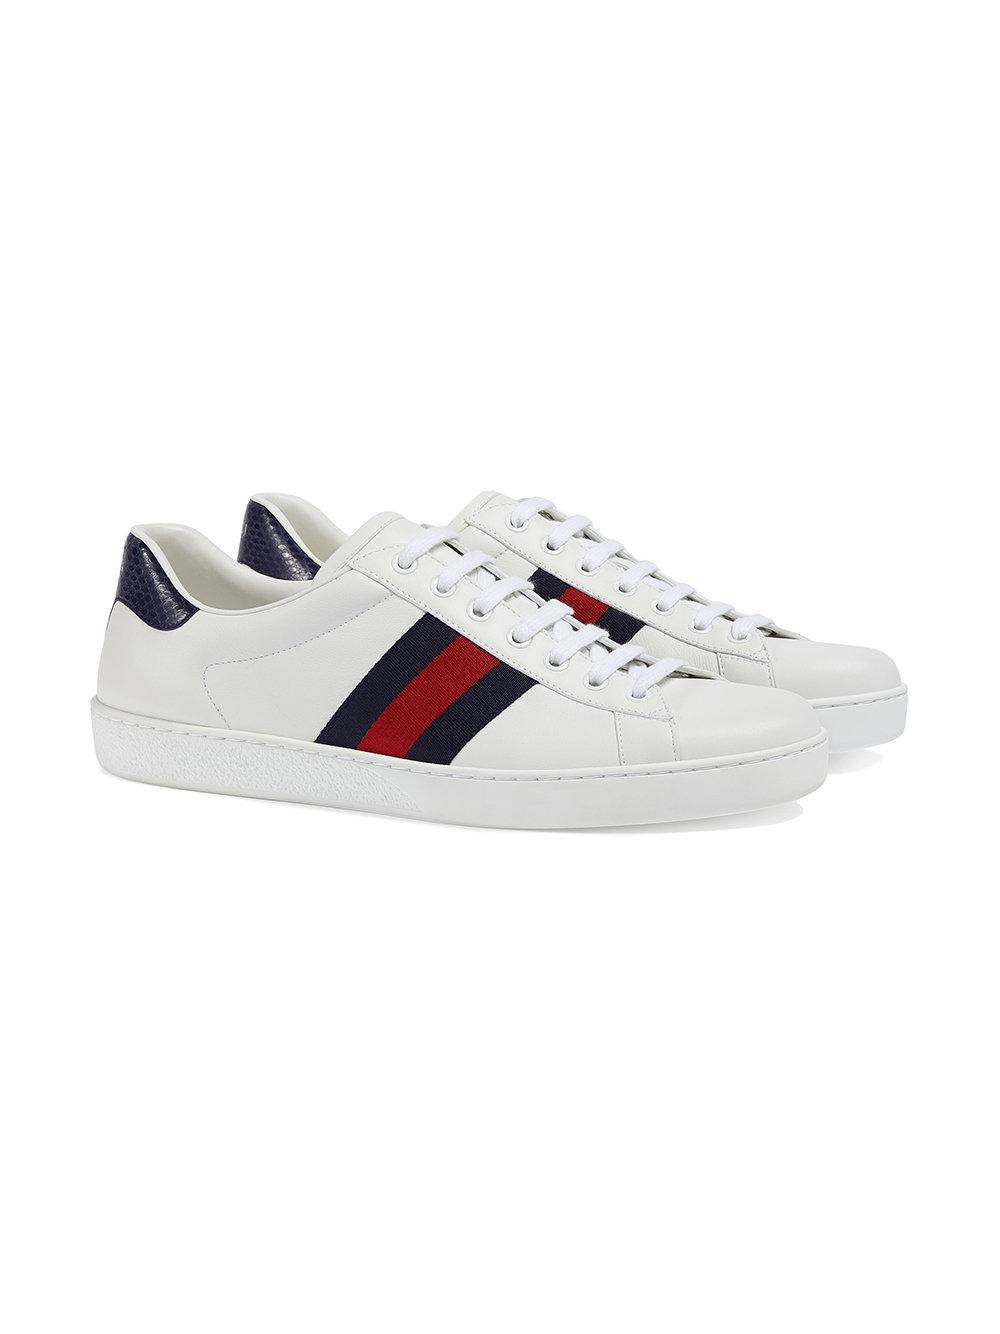 3c77299a39d Lyst - Gucci Ace Leather Low-top Sneaker in White for Men